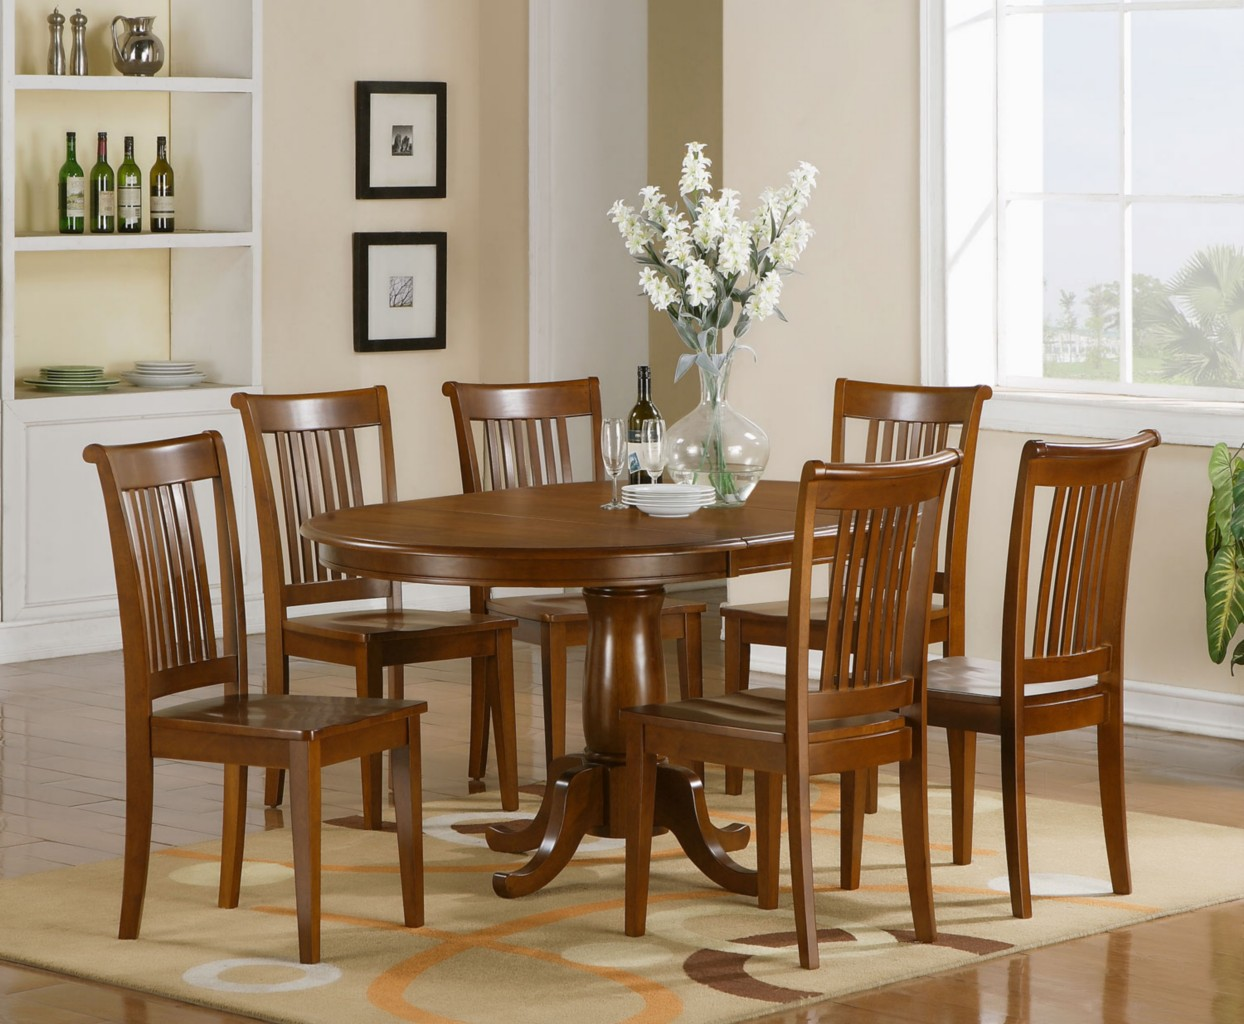 Living Room Table Sets Dining Room Set The Belvedere Dining Room Set With Ground Glass